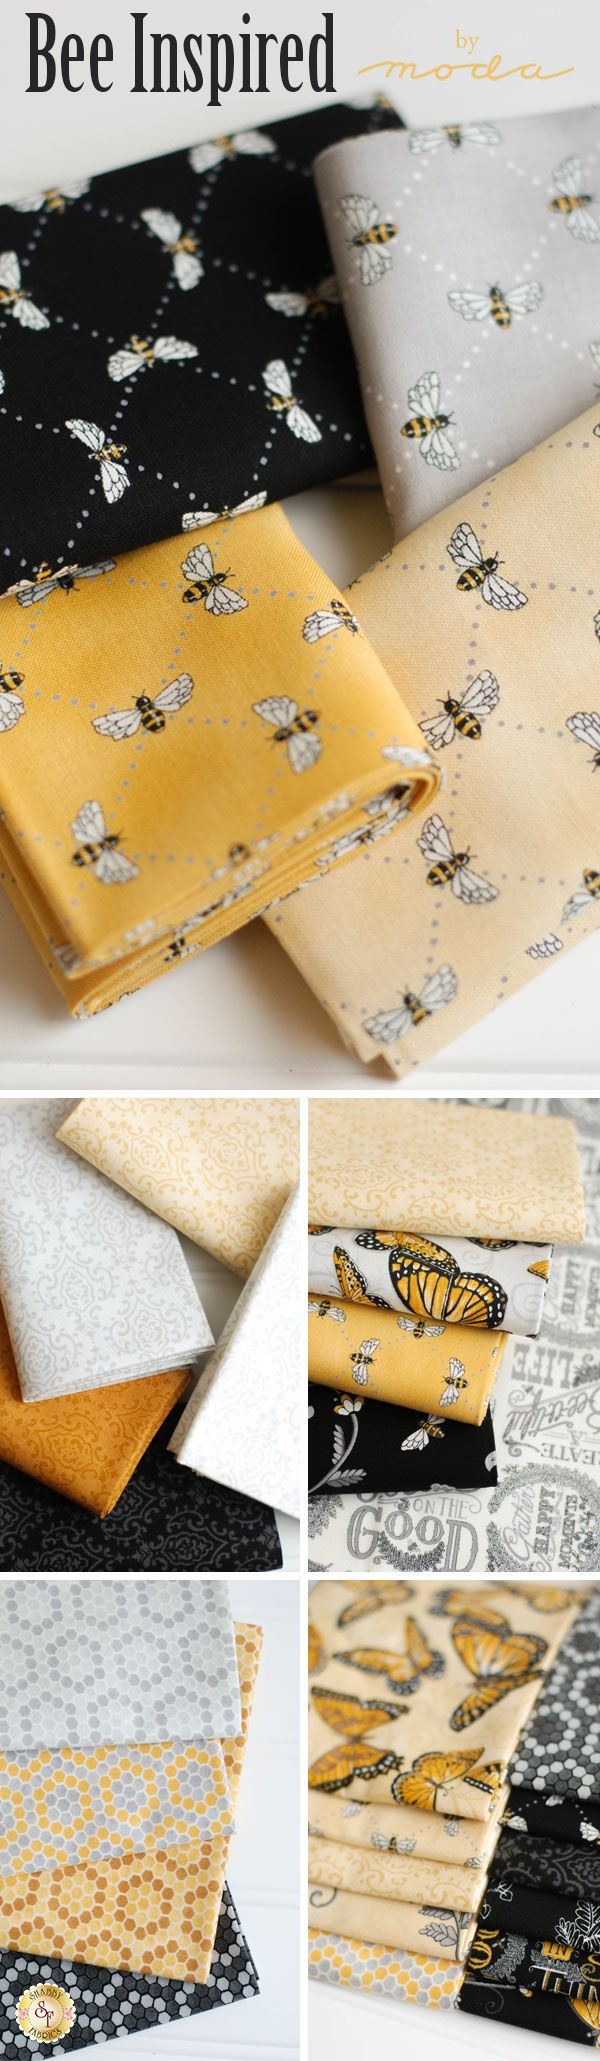 Chevron print fabric joanns - Bee Inspired Is A Beautiful Nature Inspired Collection By Deb Strain For Moda Fabrics Available At